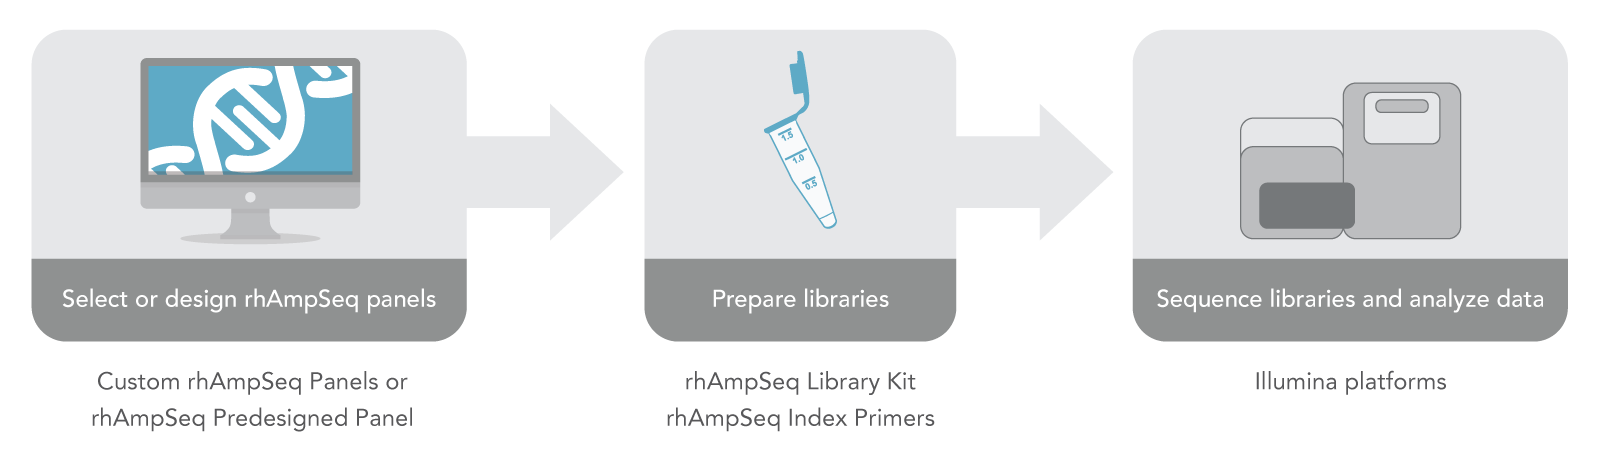 rhAmpSeq-Workflow-and-Components